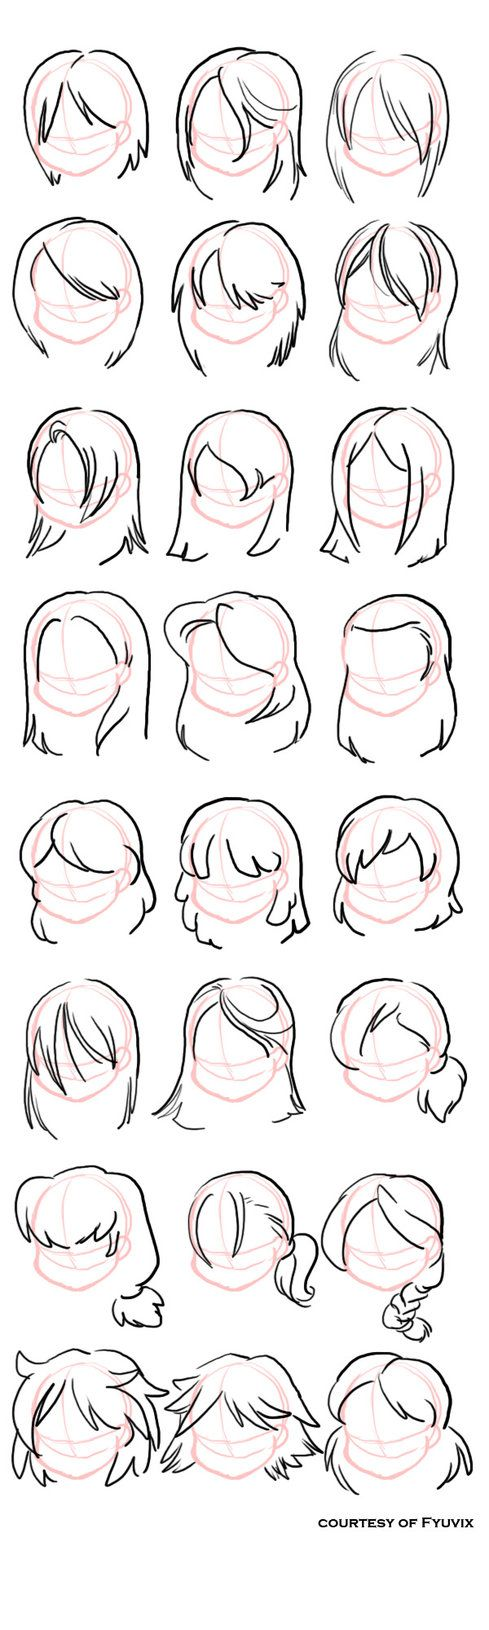 Chart on straight hairstyle ideas for when creating a female anime/manga character.